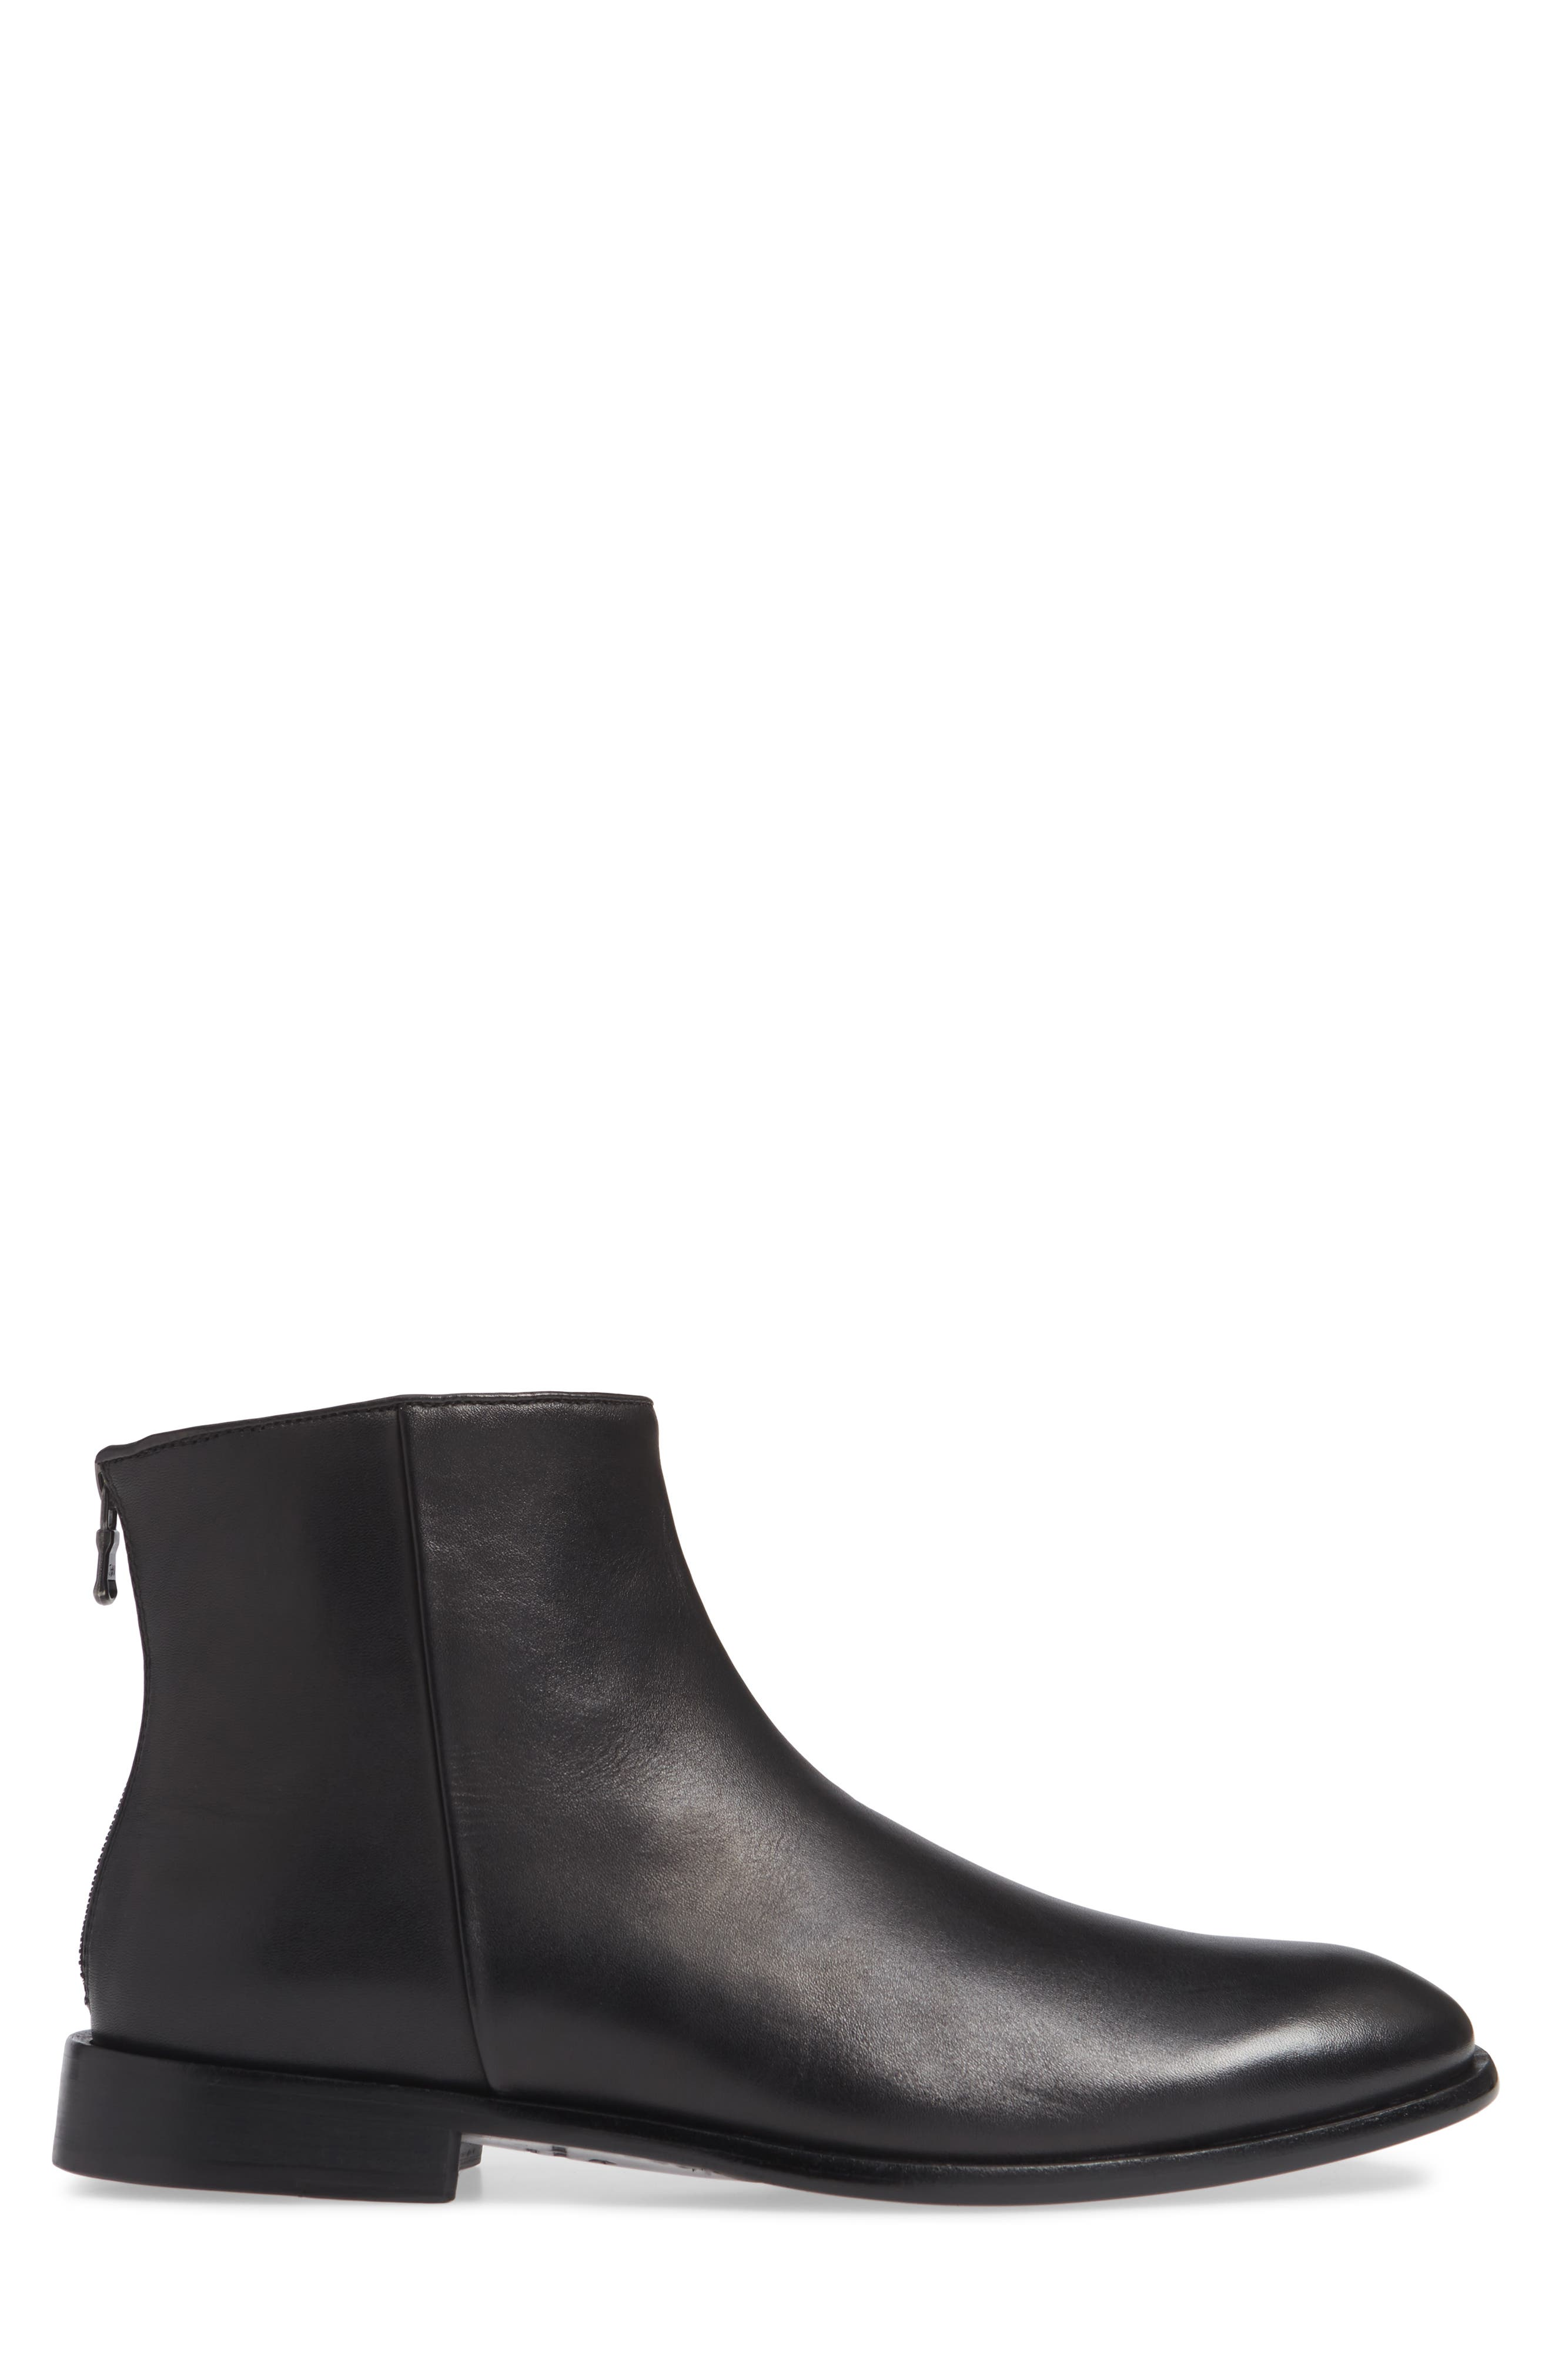 NYC Back Zip Boot,                             Alternate thumbnail 3, color,                             BLACK LEATHER